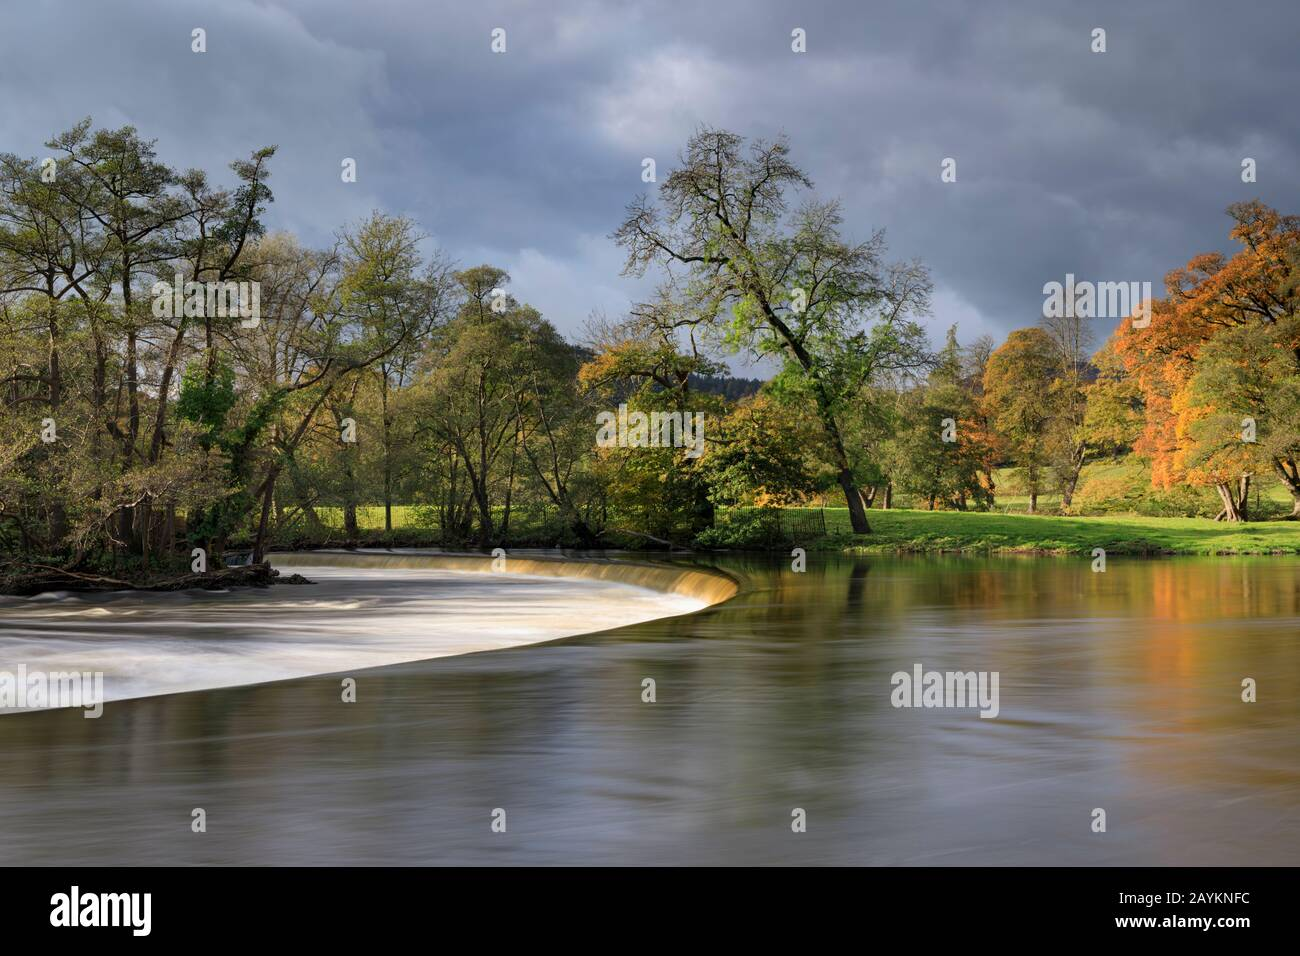 Horseshoe Falls, on the River Dee near Llangollen in North Wales Stock Photo